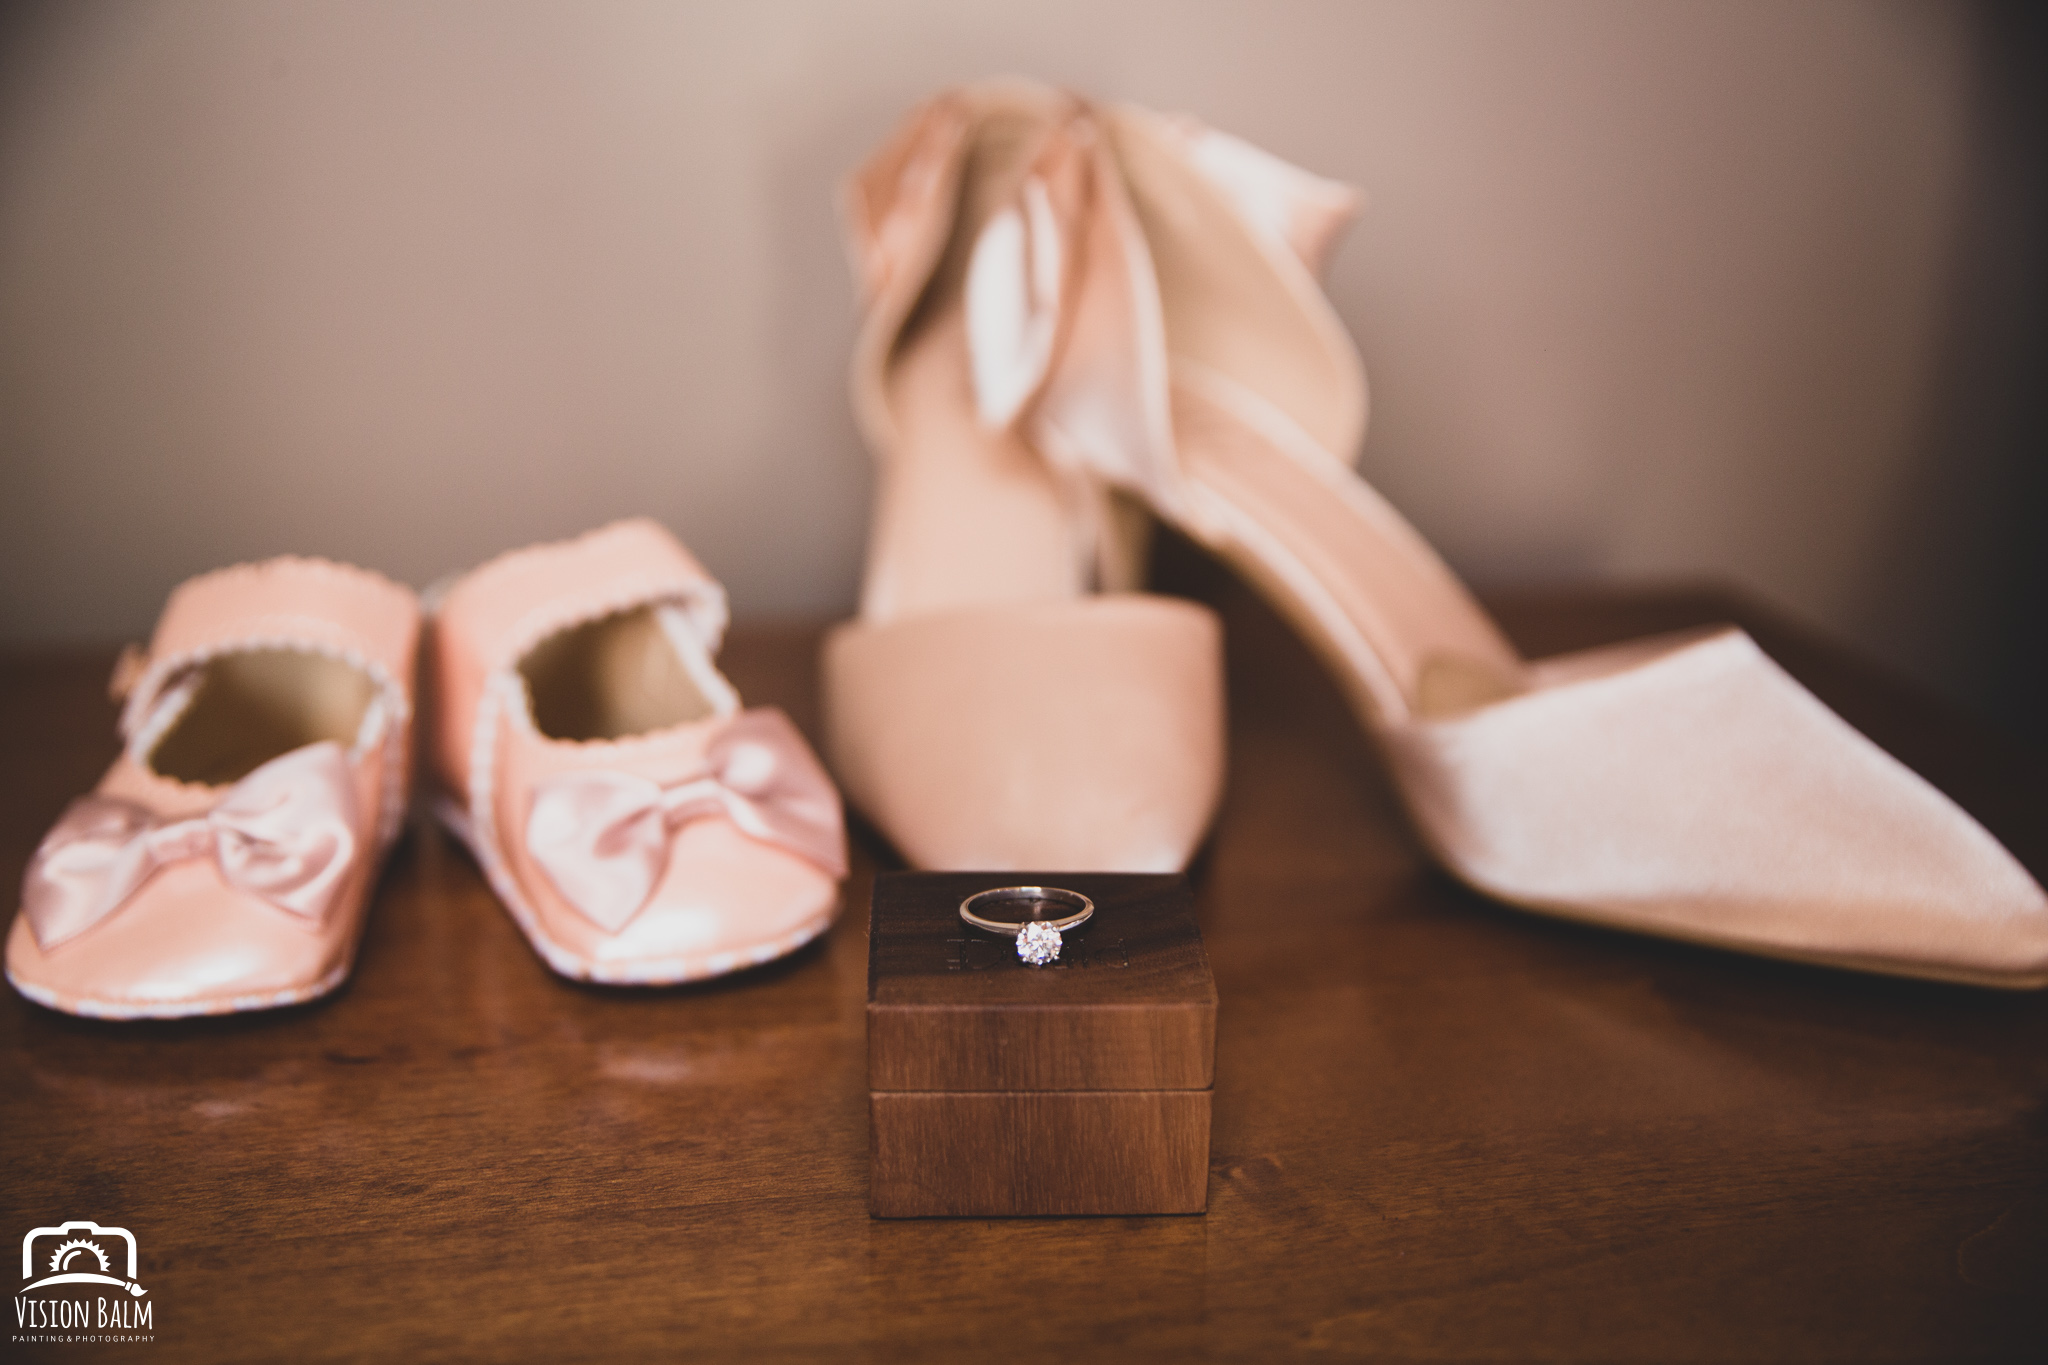 Detailed wedding photo of pink shoes with wedding ring in Zuka's Hilltop Barn by Vision Balm in Charleston, SC.